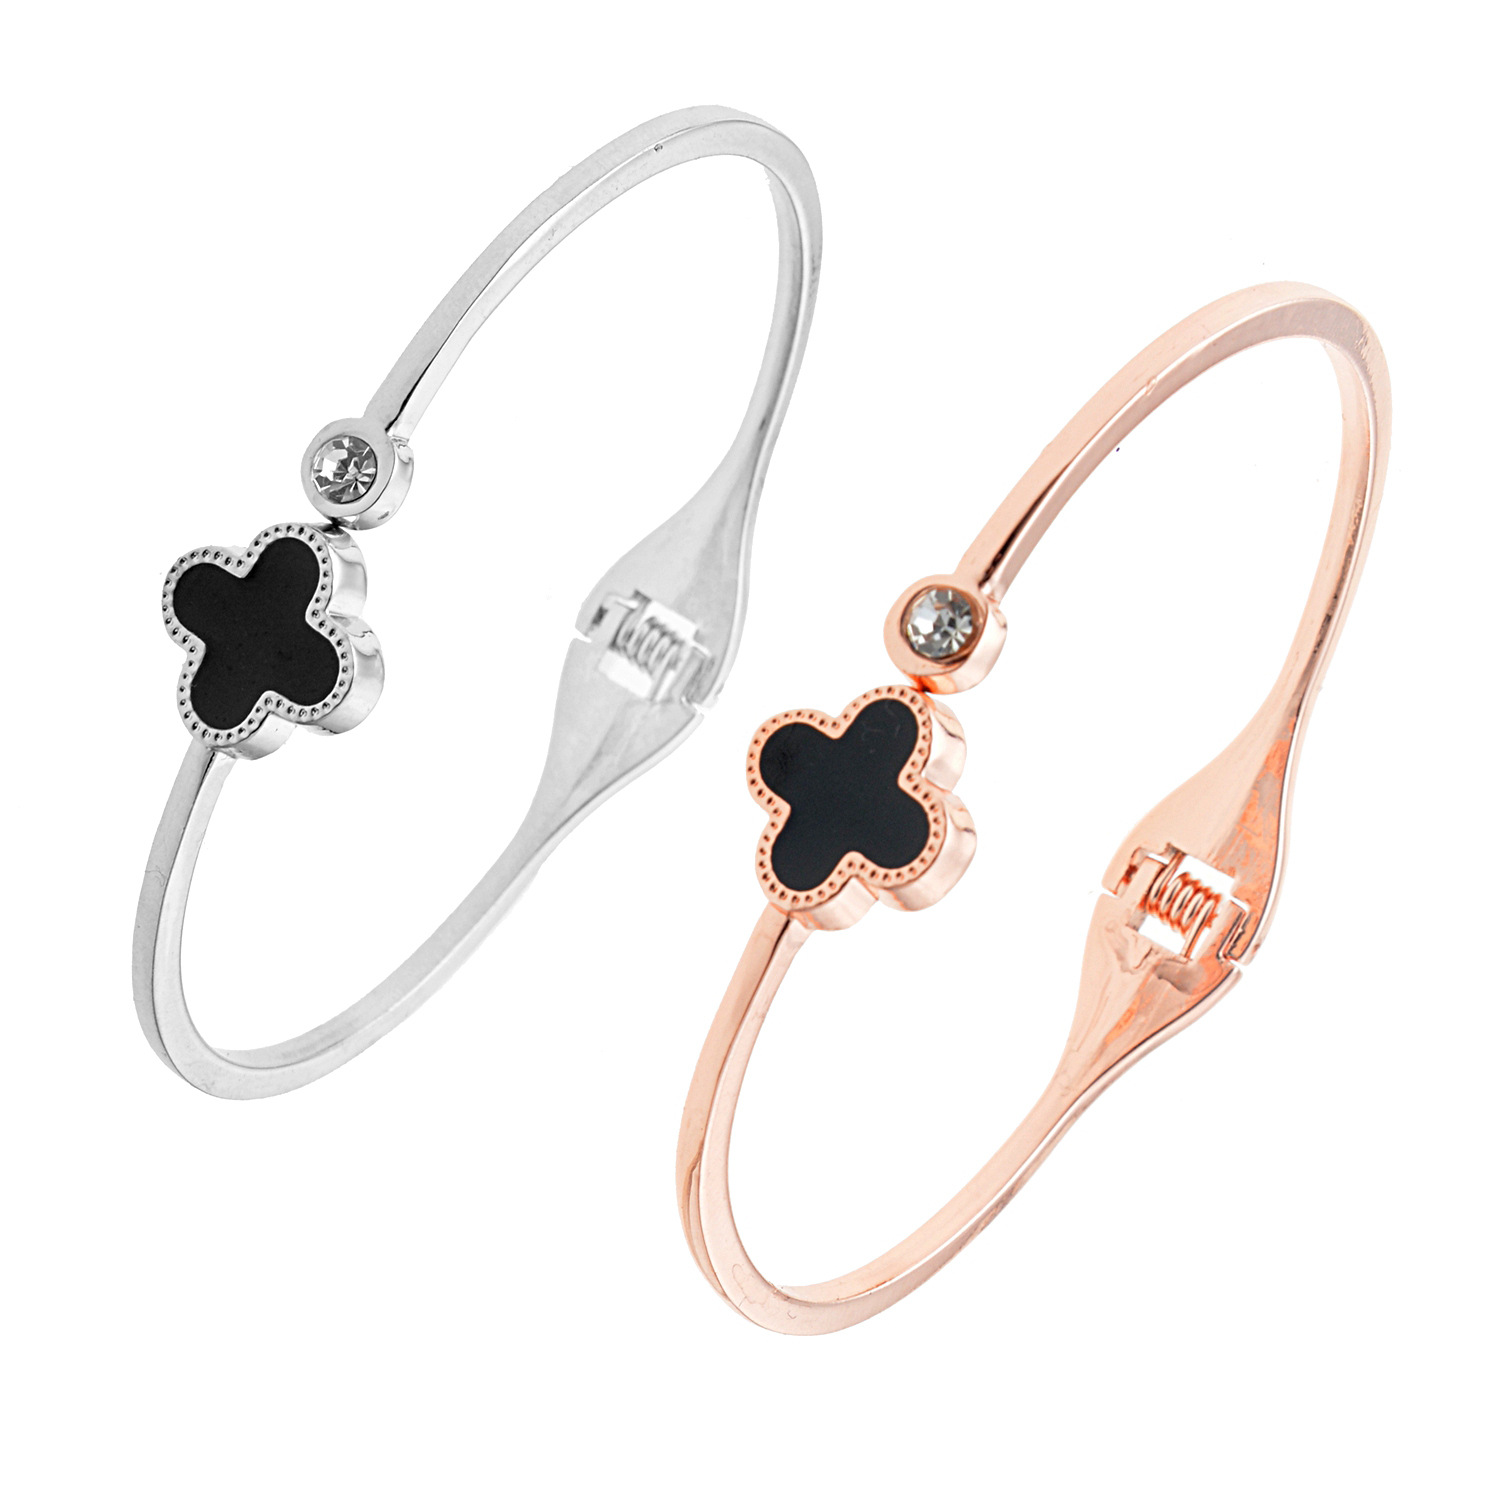 Fashion lucky four-leaf clover popular bracelet female jewelry watch accessories personalized jewelry bangles for women